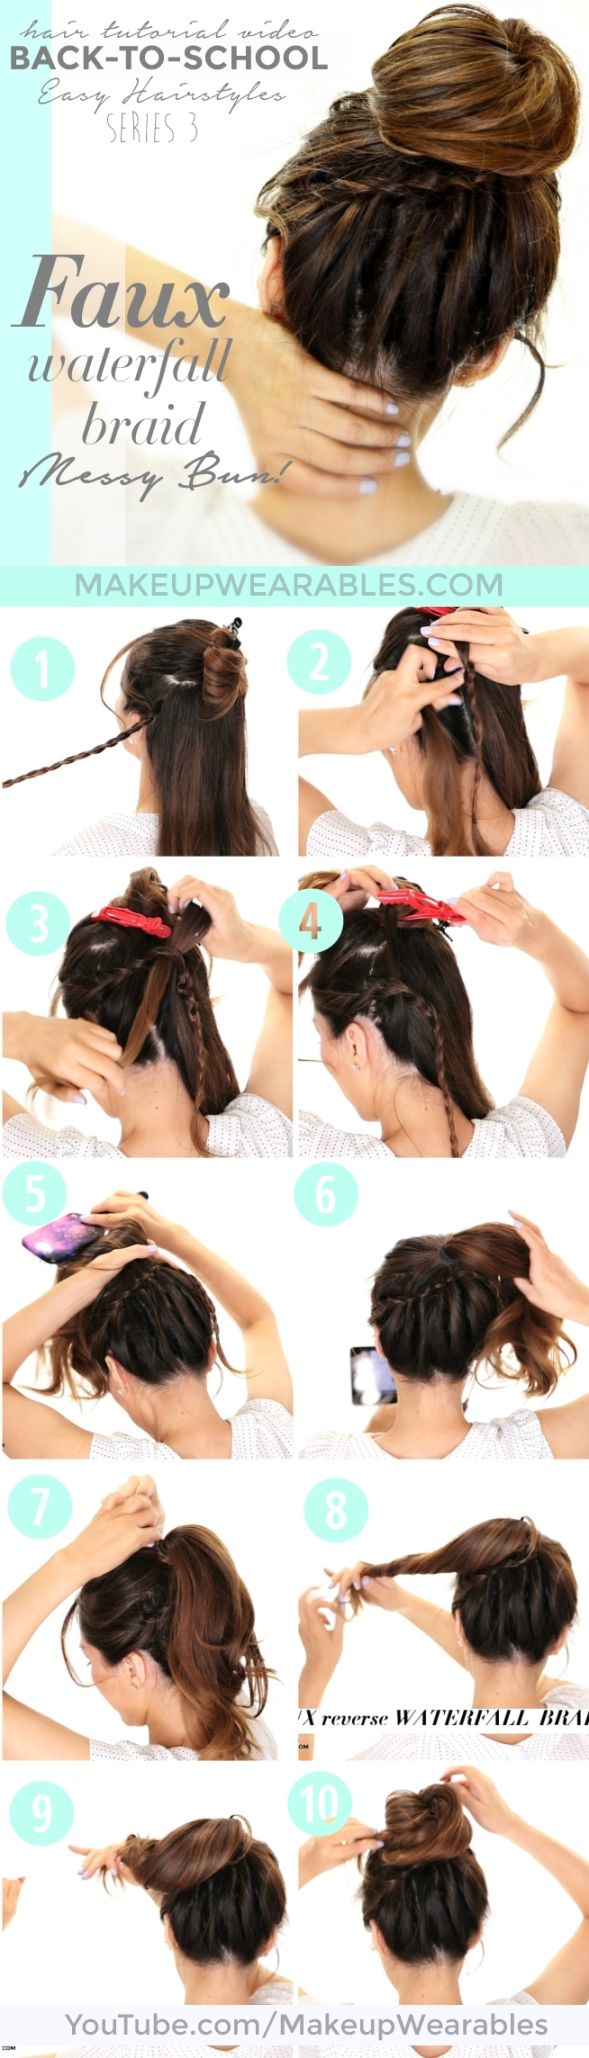 best hairstyles to try images on pinterest cute hairstyles